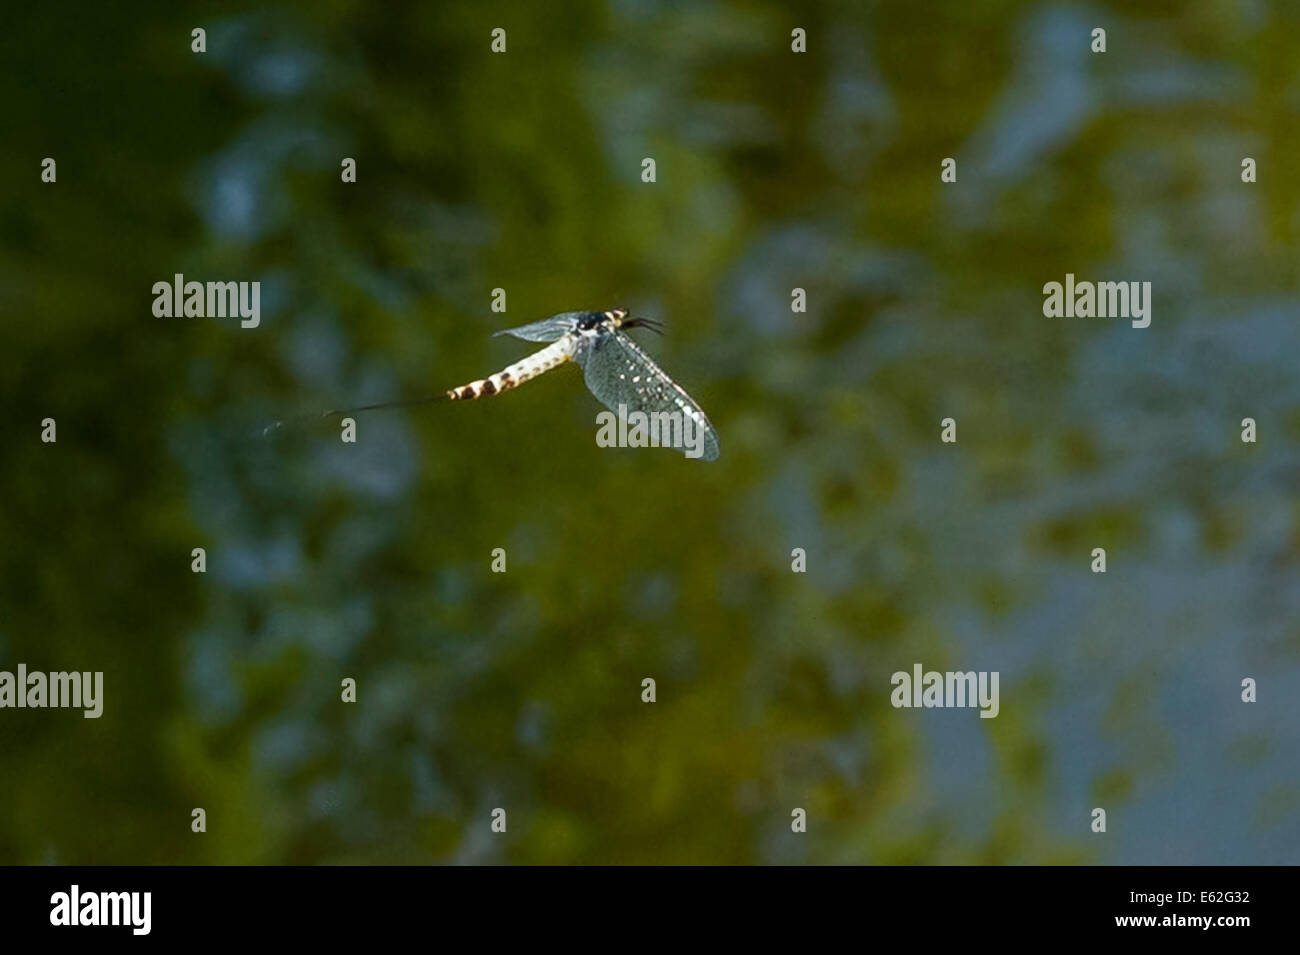 A Mayfly flying during a June hatch - Stock Image